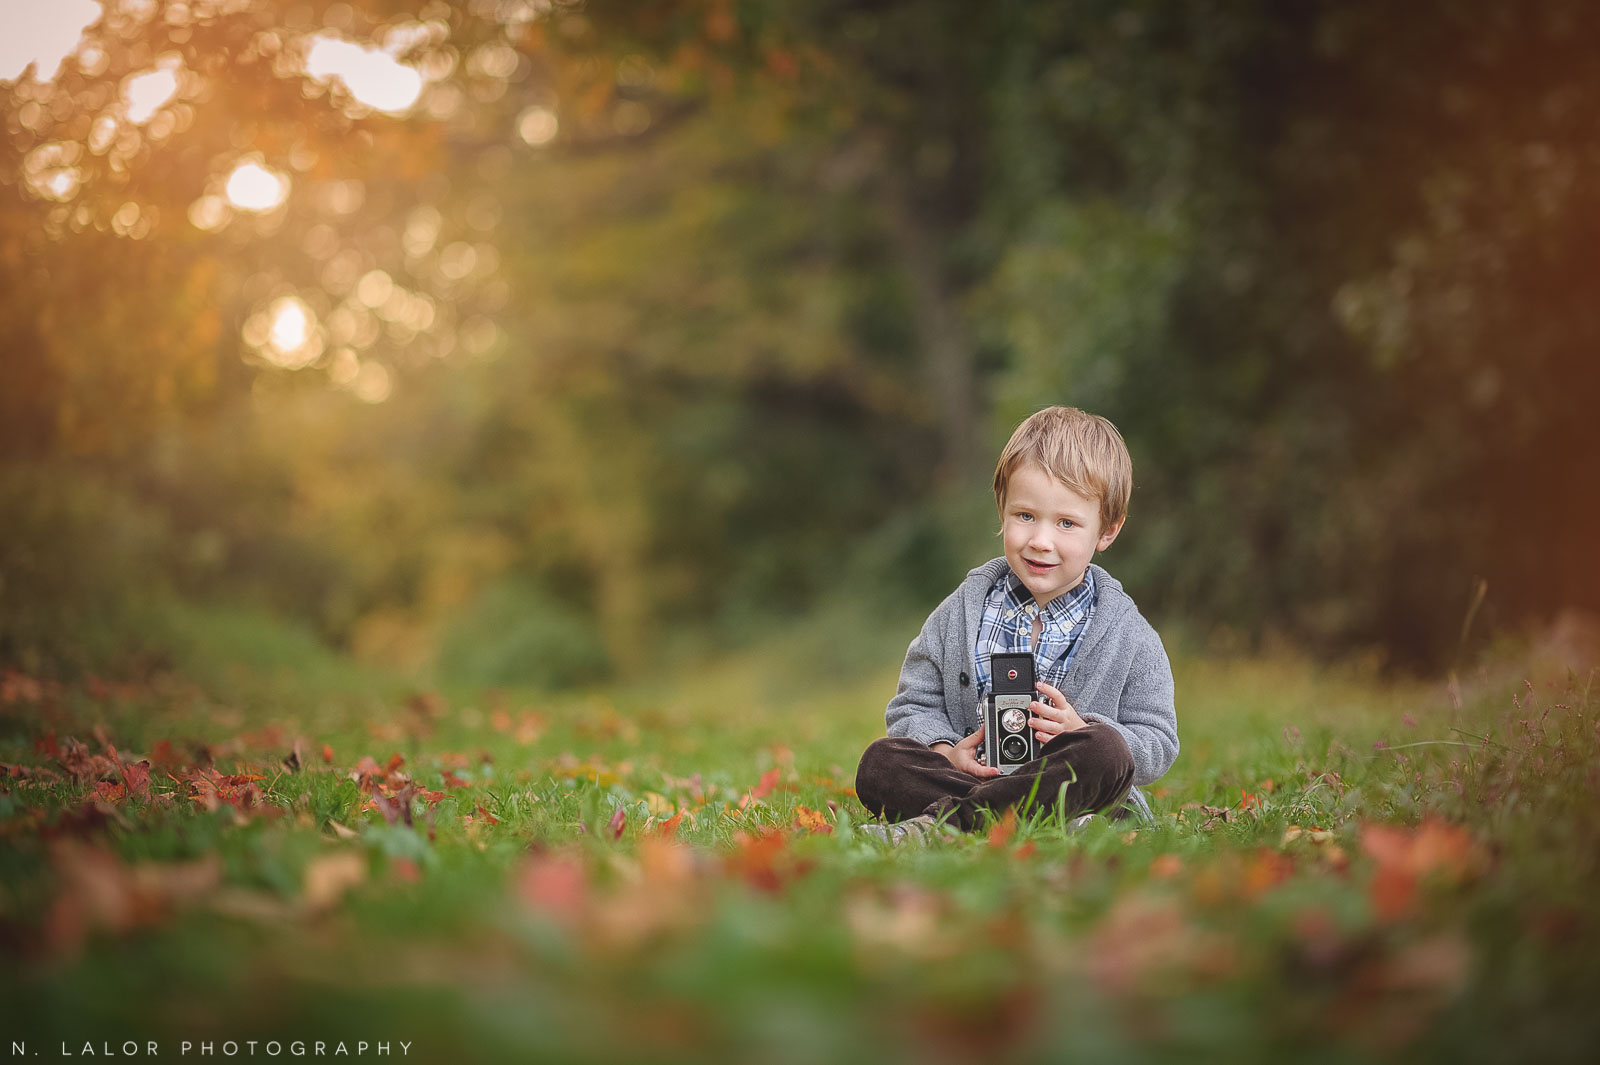 nlalor-photography-boy-fall-new-canaan-nature-center-photo-session-8.jpg